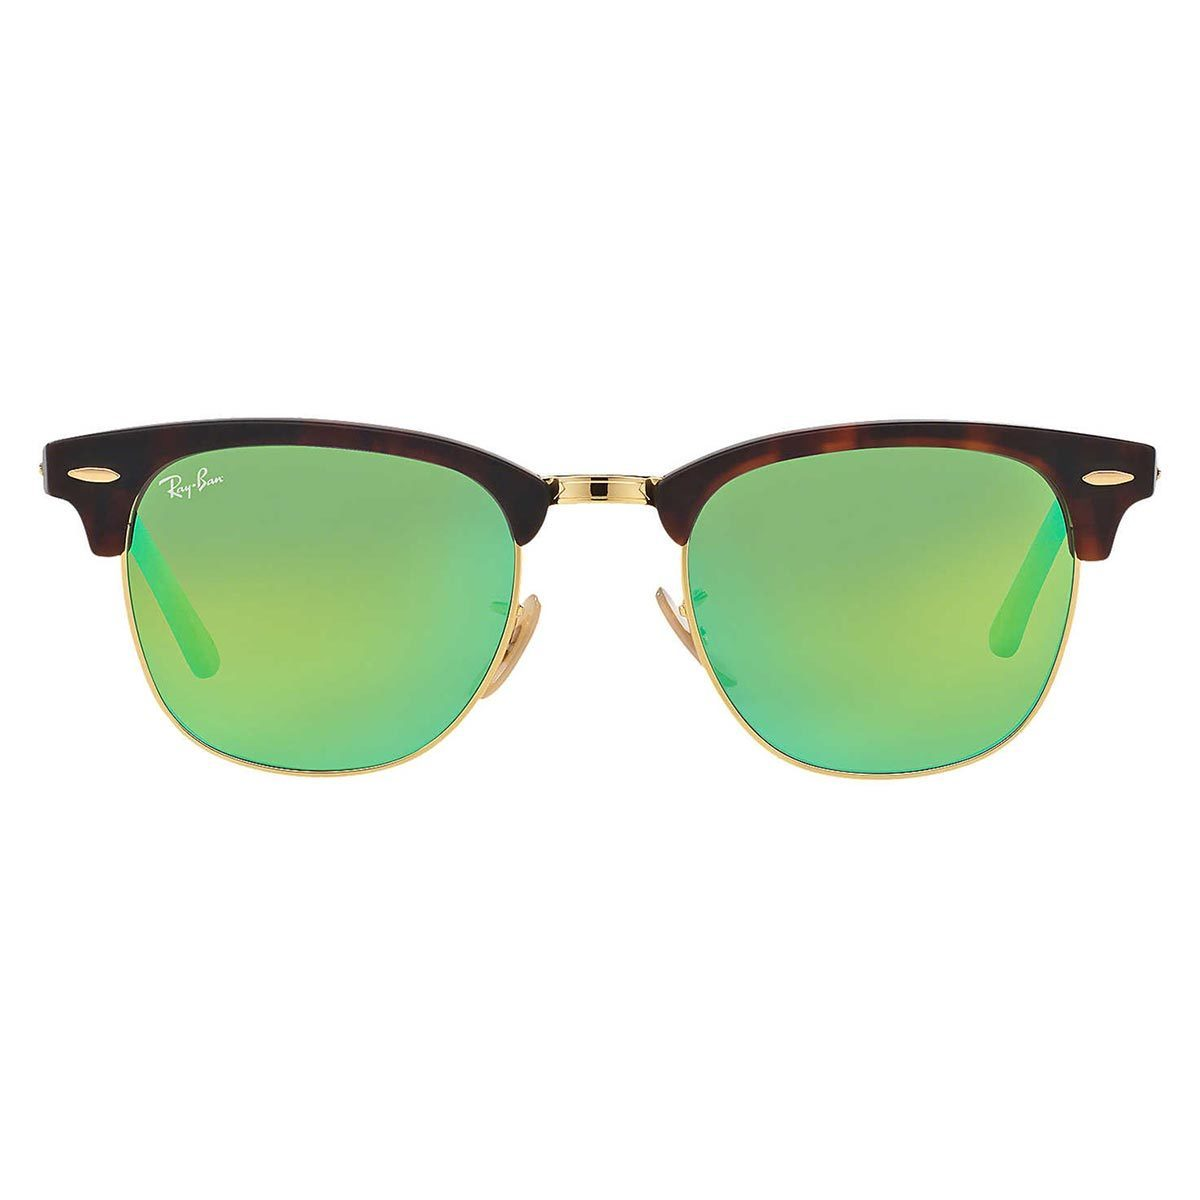 b16ff9c7c8c3cd Shop Ray-Ban Unisex  Clubmaster RB3016 114519  Round Sunglasses - Free  Shipping Today - Overstock - 9375468